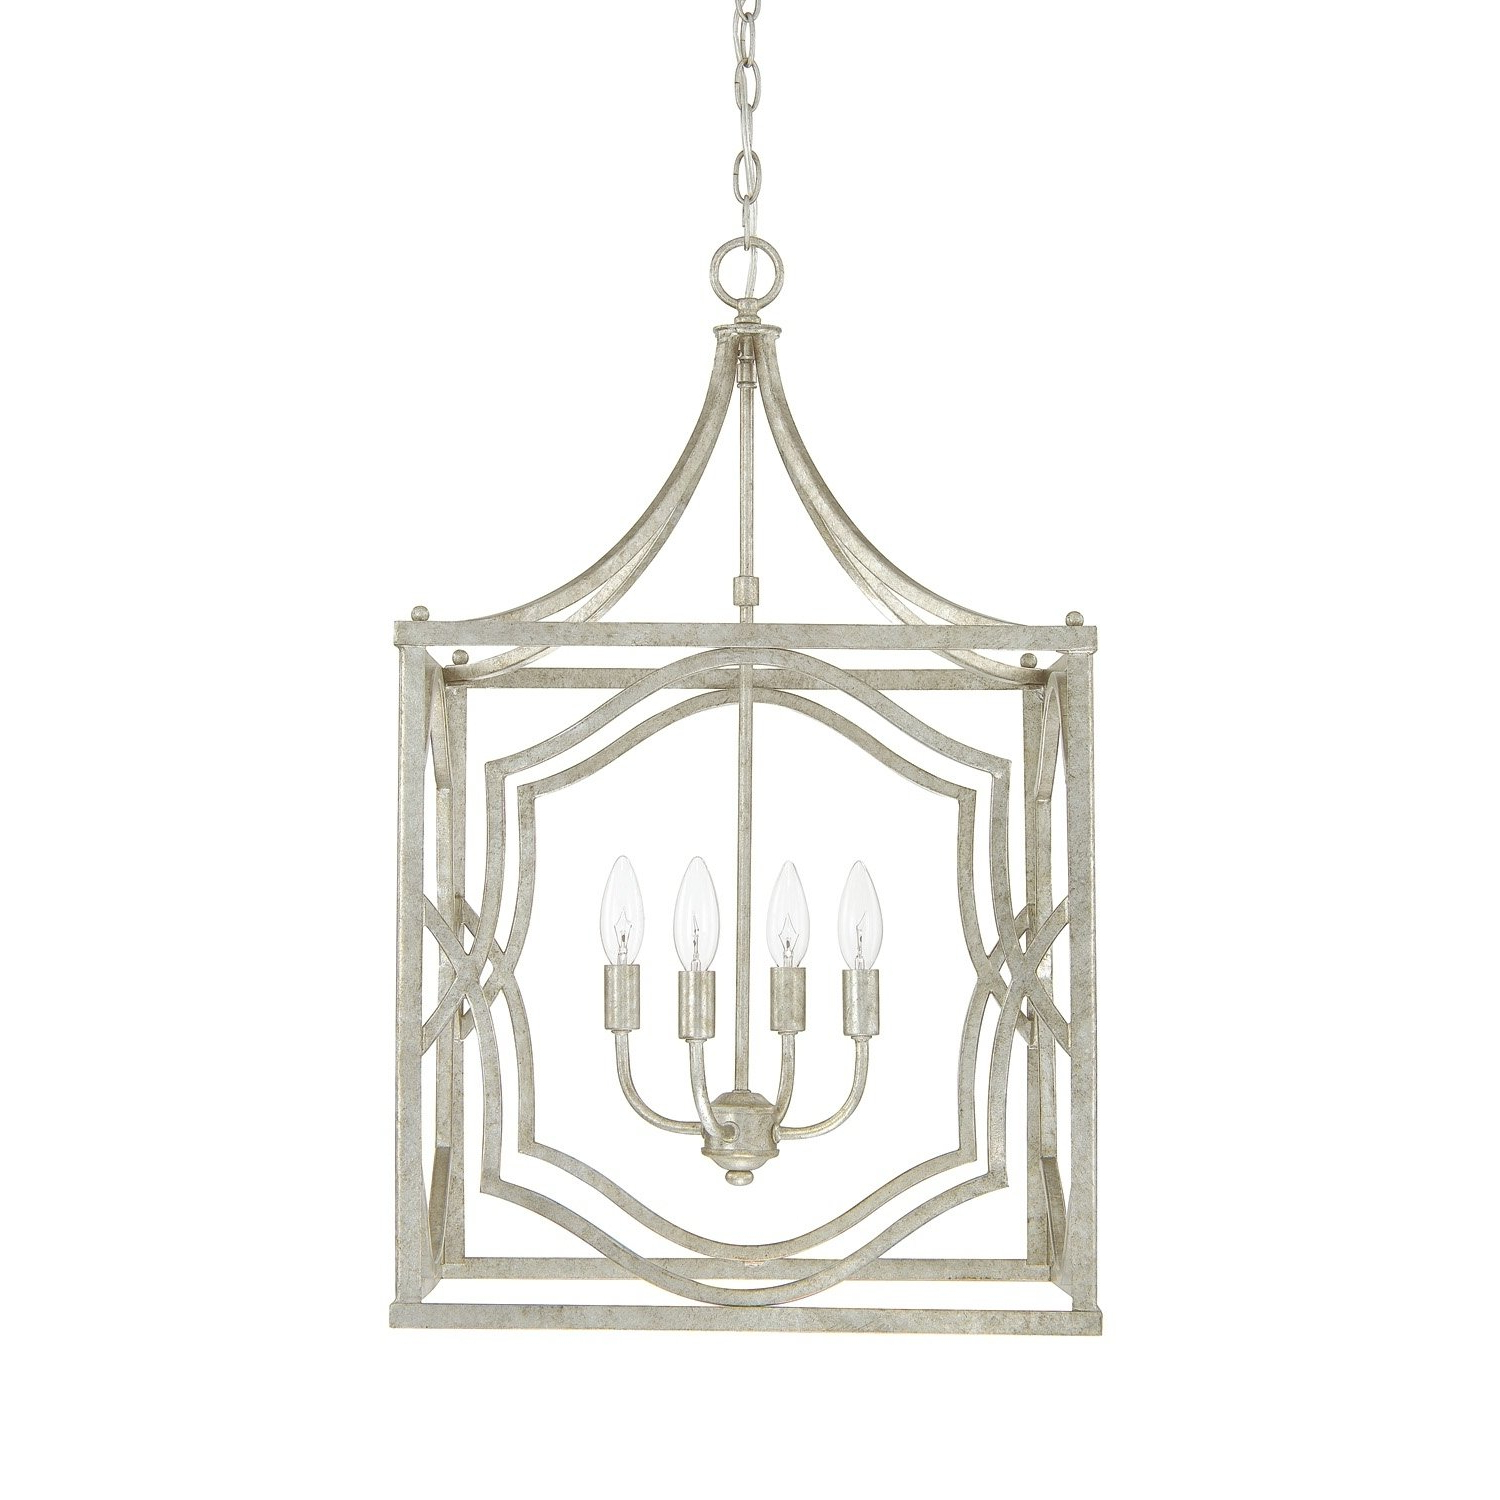 Well Liked Oriana 4 Light Single Geometric Chandeliers Regarding Blakely 4 Light Antique Silver Foyer Fixture – Antique (View 25 of 25)